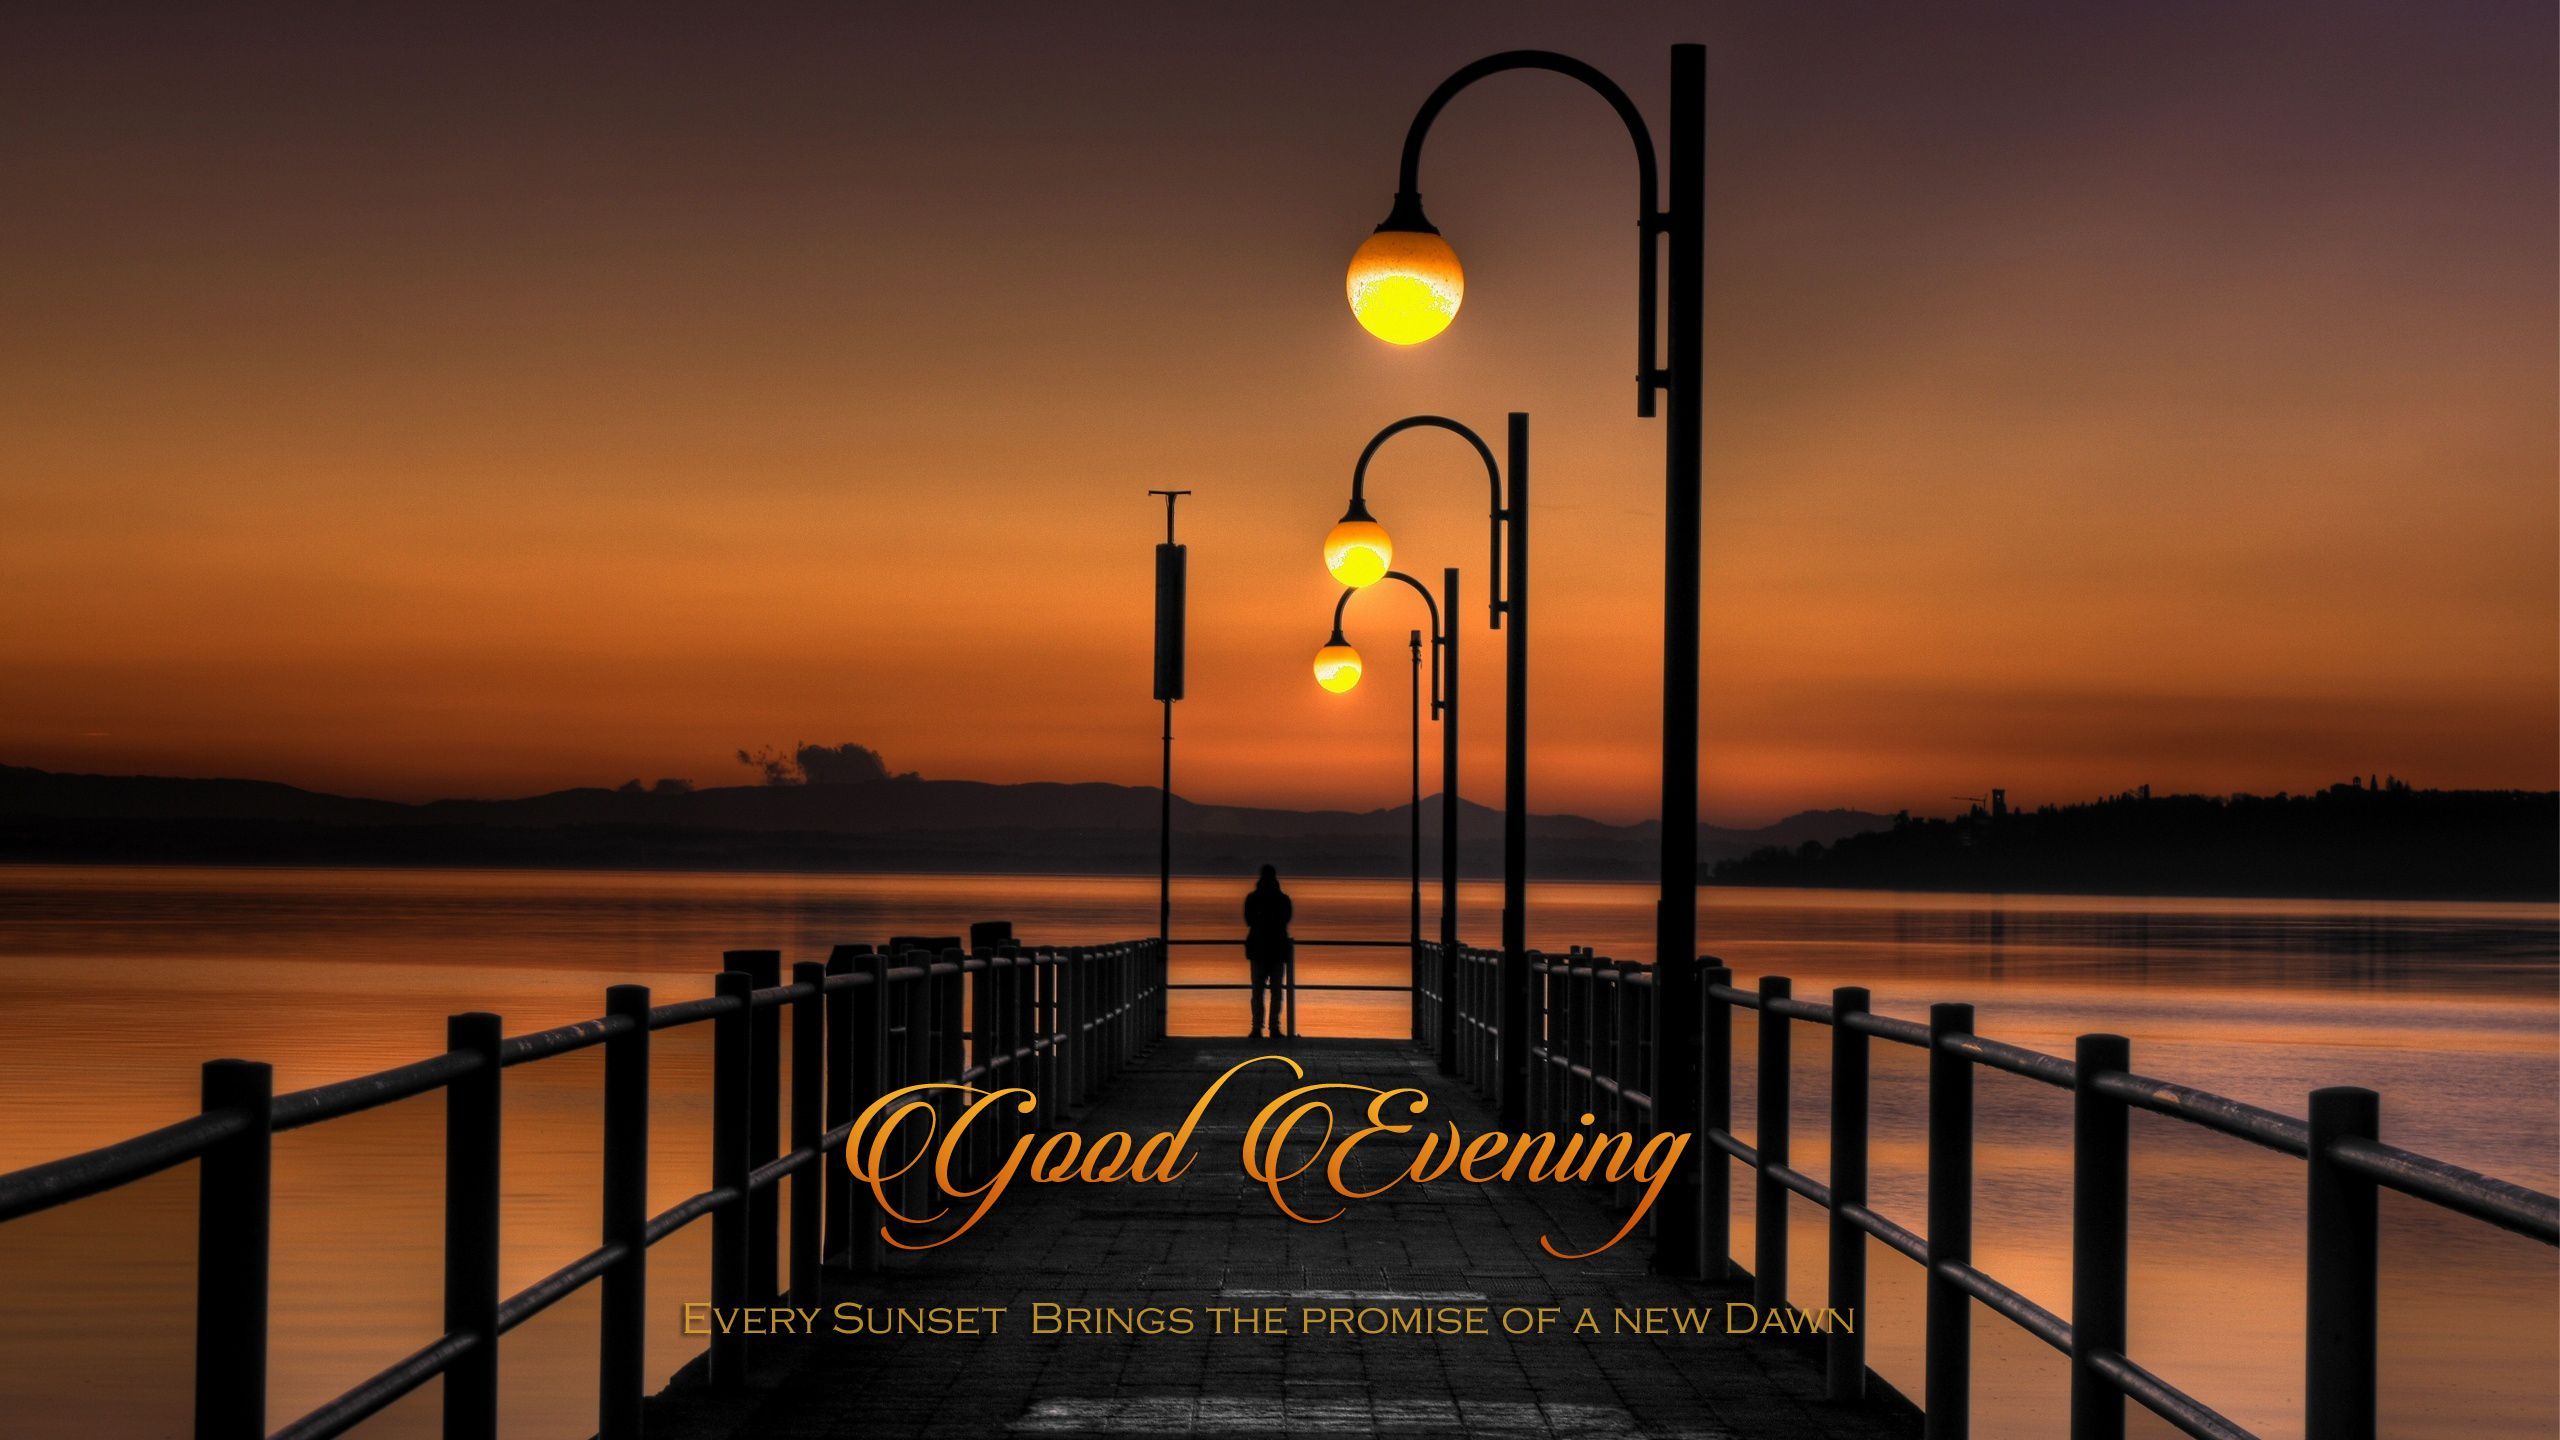 have a nice evening quotes, have a nice night quotes, have a good night quotes for her, have a good night quotes funny, have a good night everyone quotes